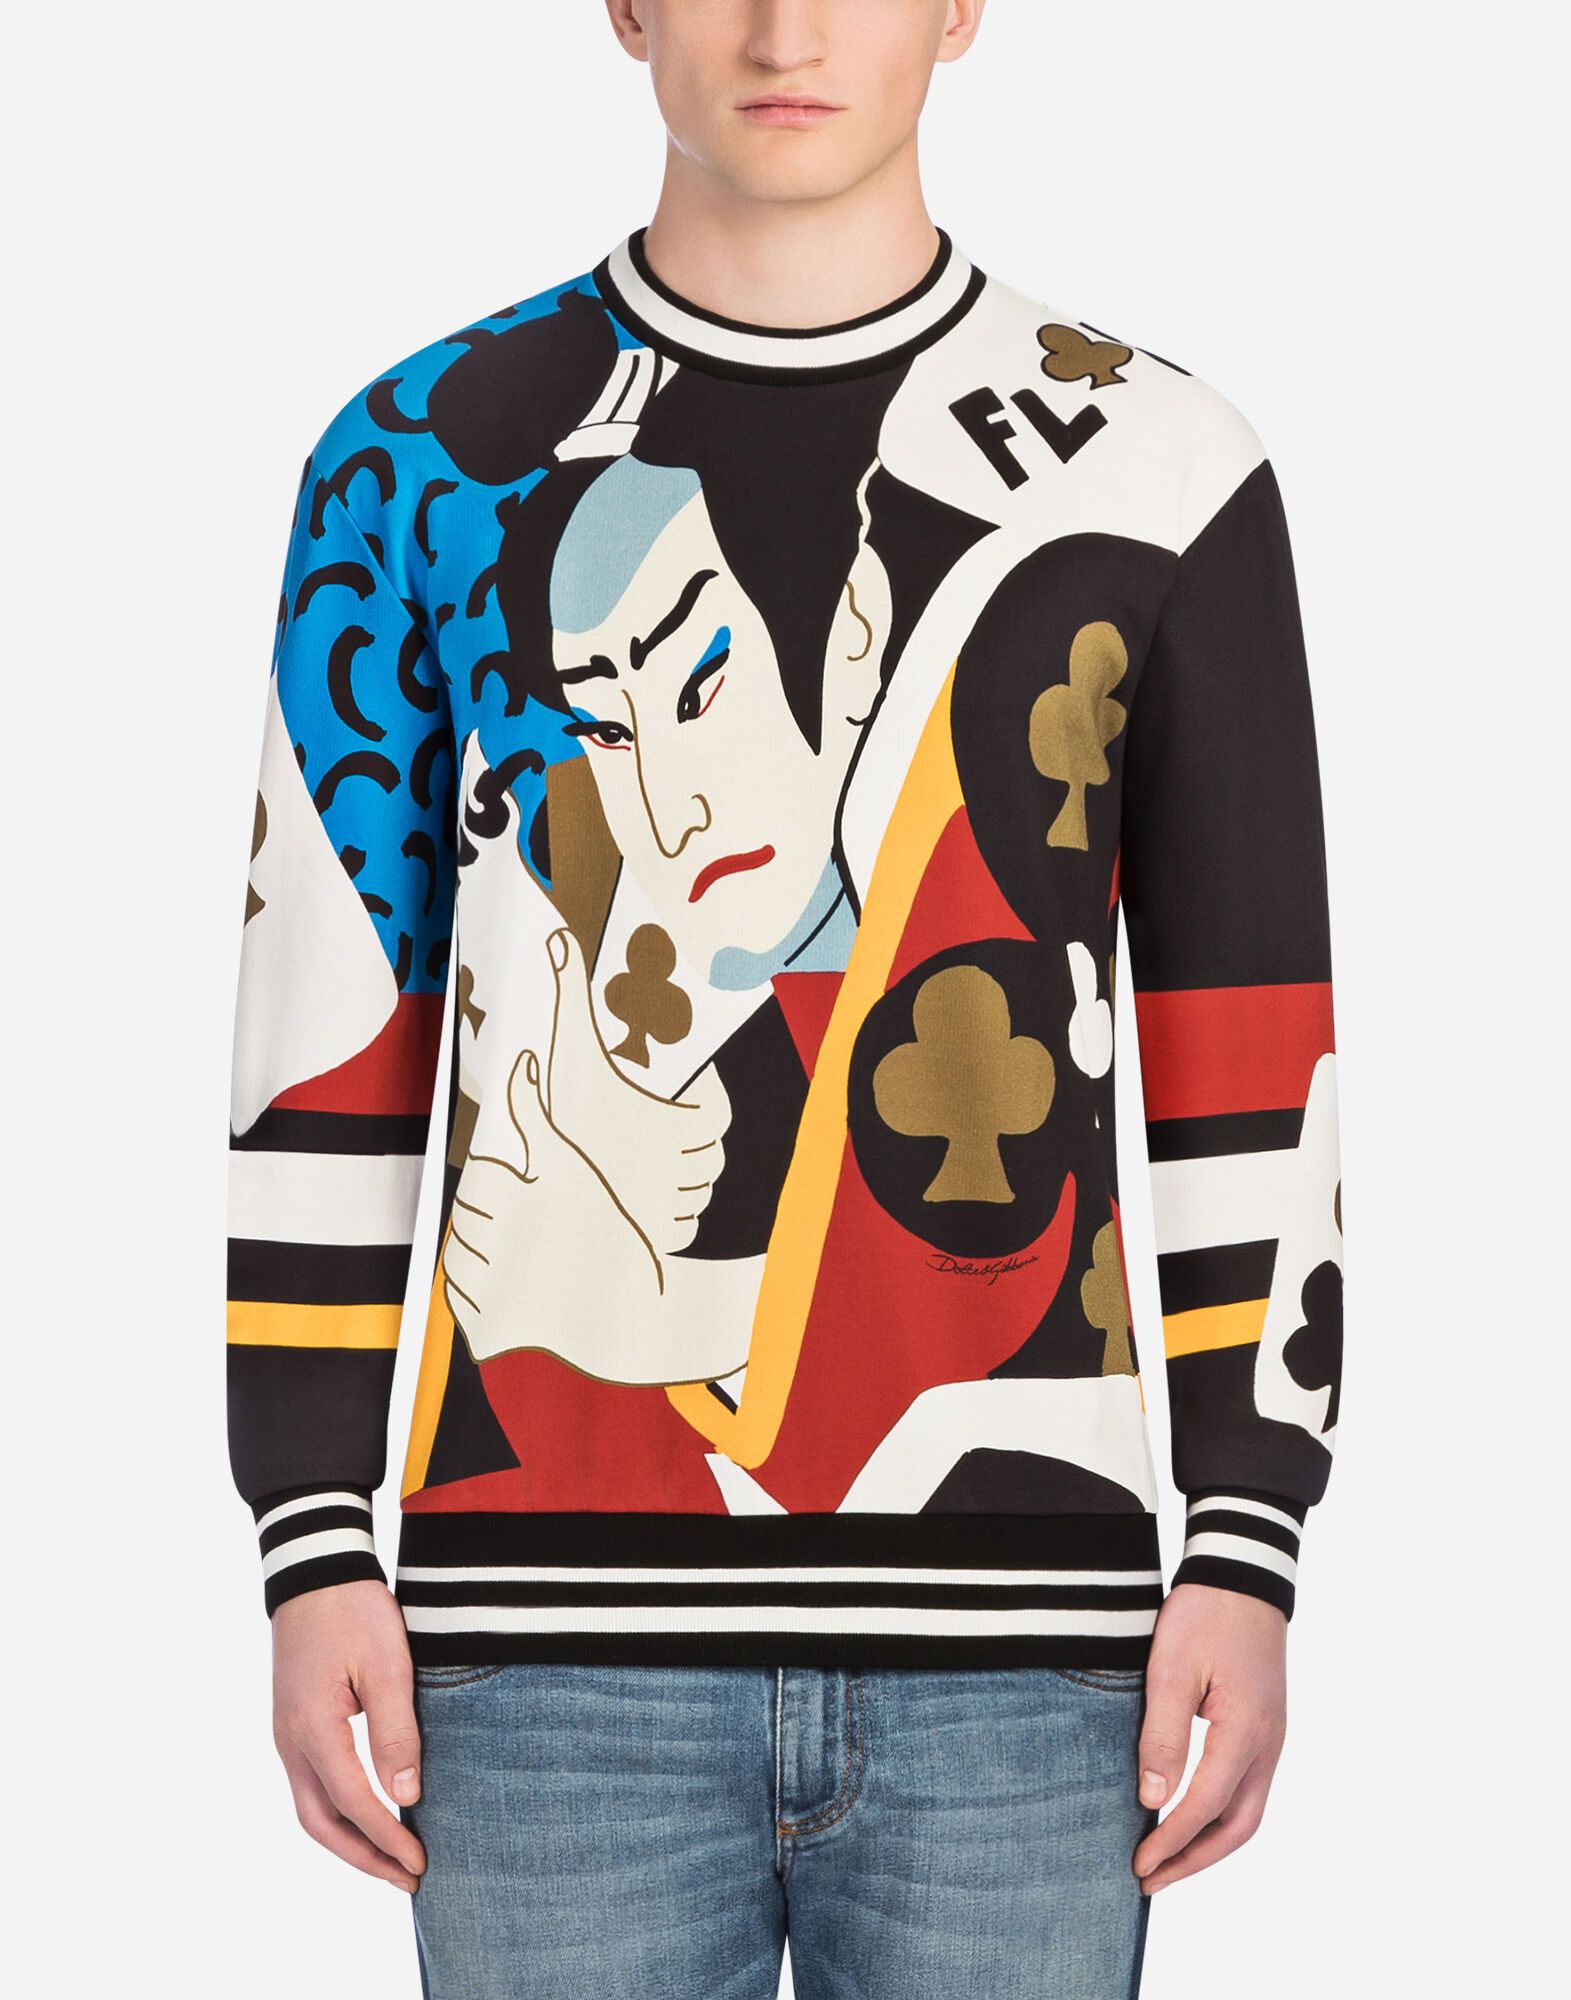 SWEATSHIRT IN PRINTED COTTON from DOLCE & GABBANA